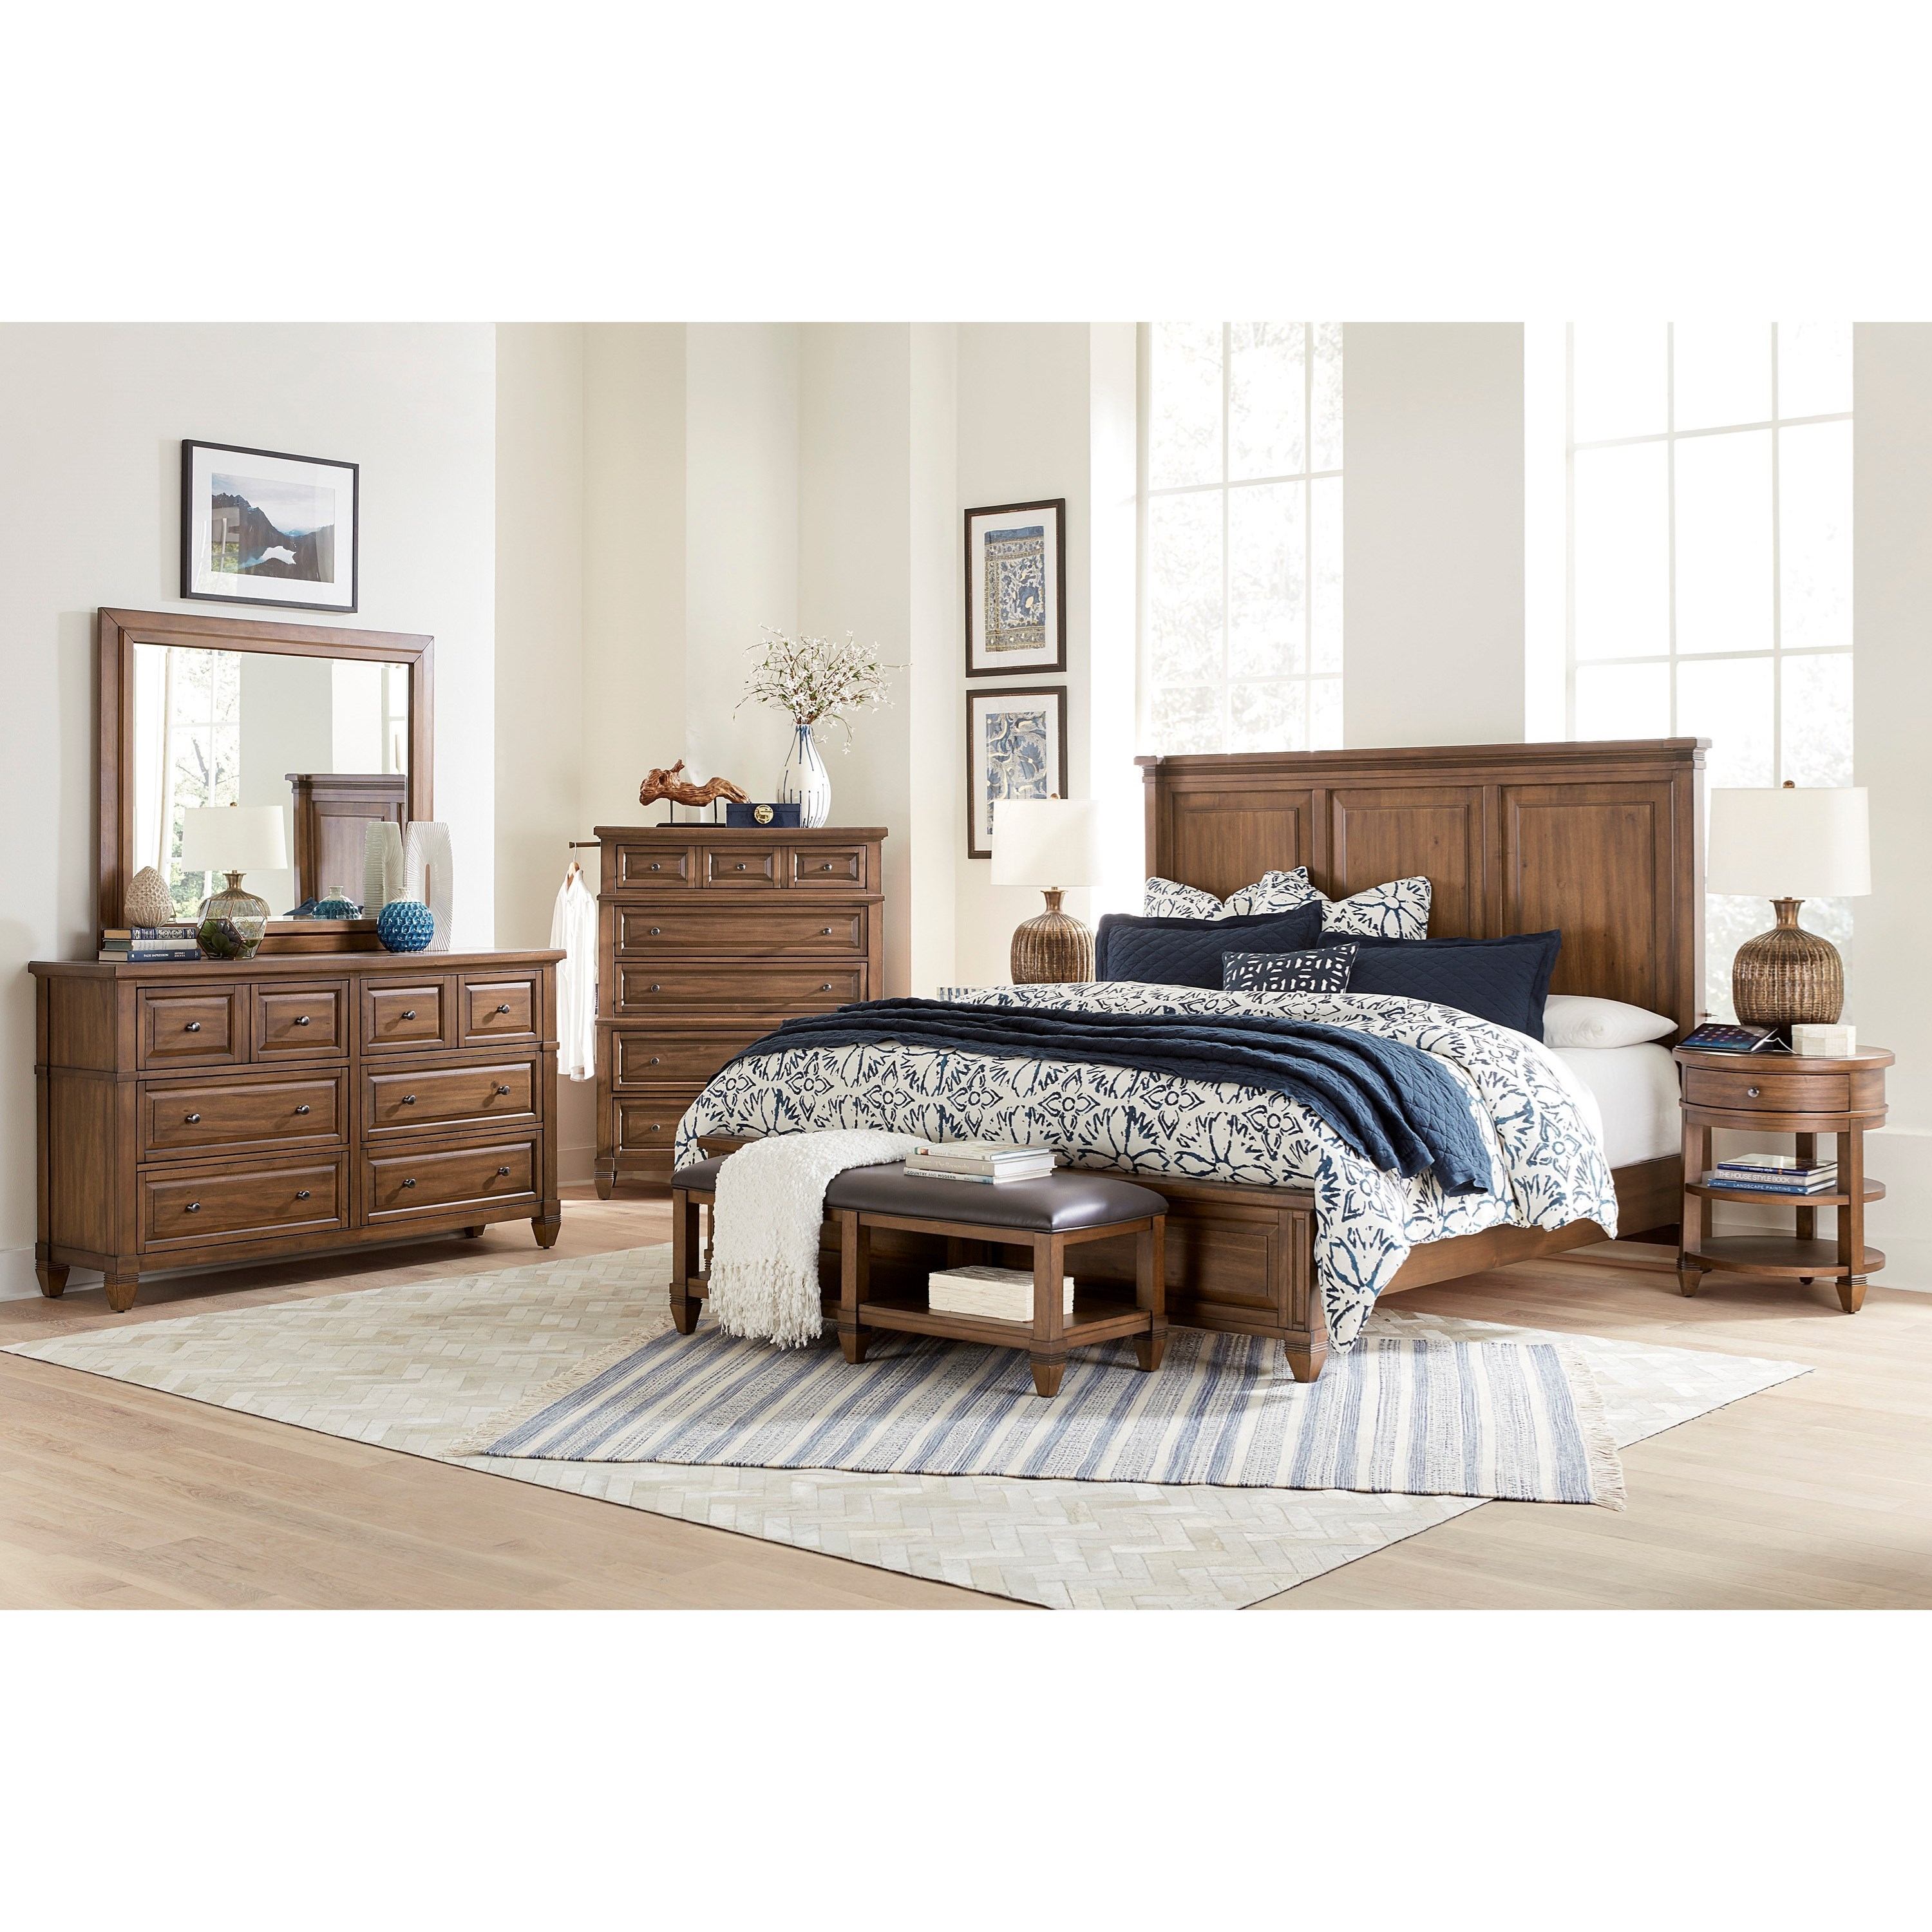 Thornton Queen Bedroom Group by Aspenhome at Stoney Creek Furniture